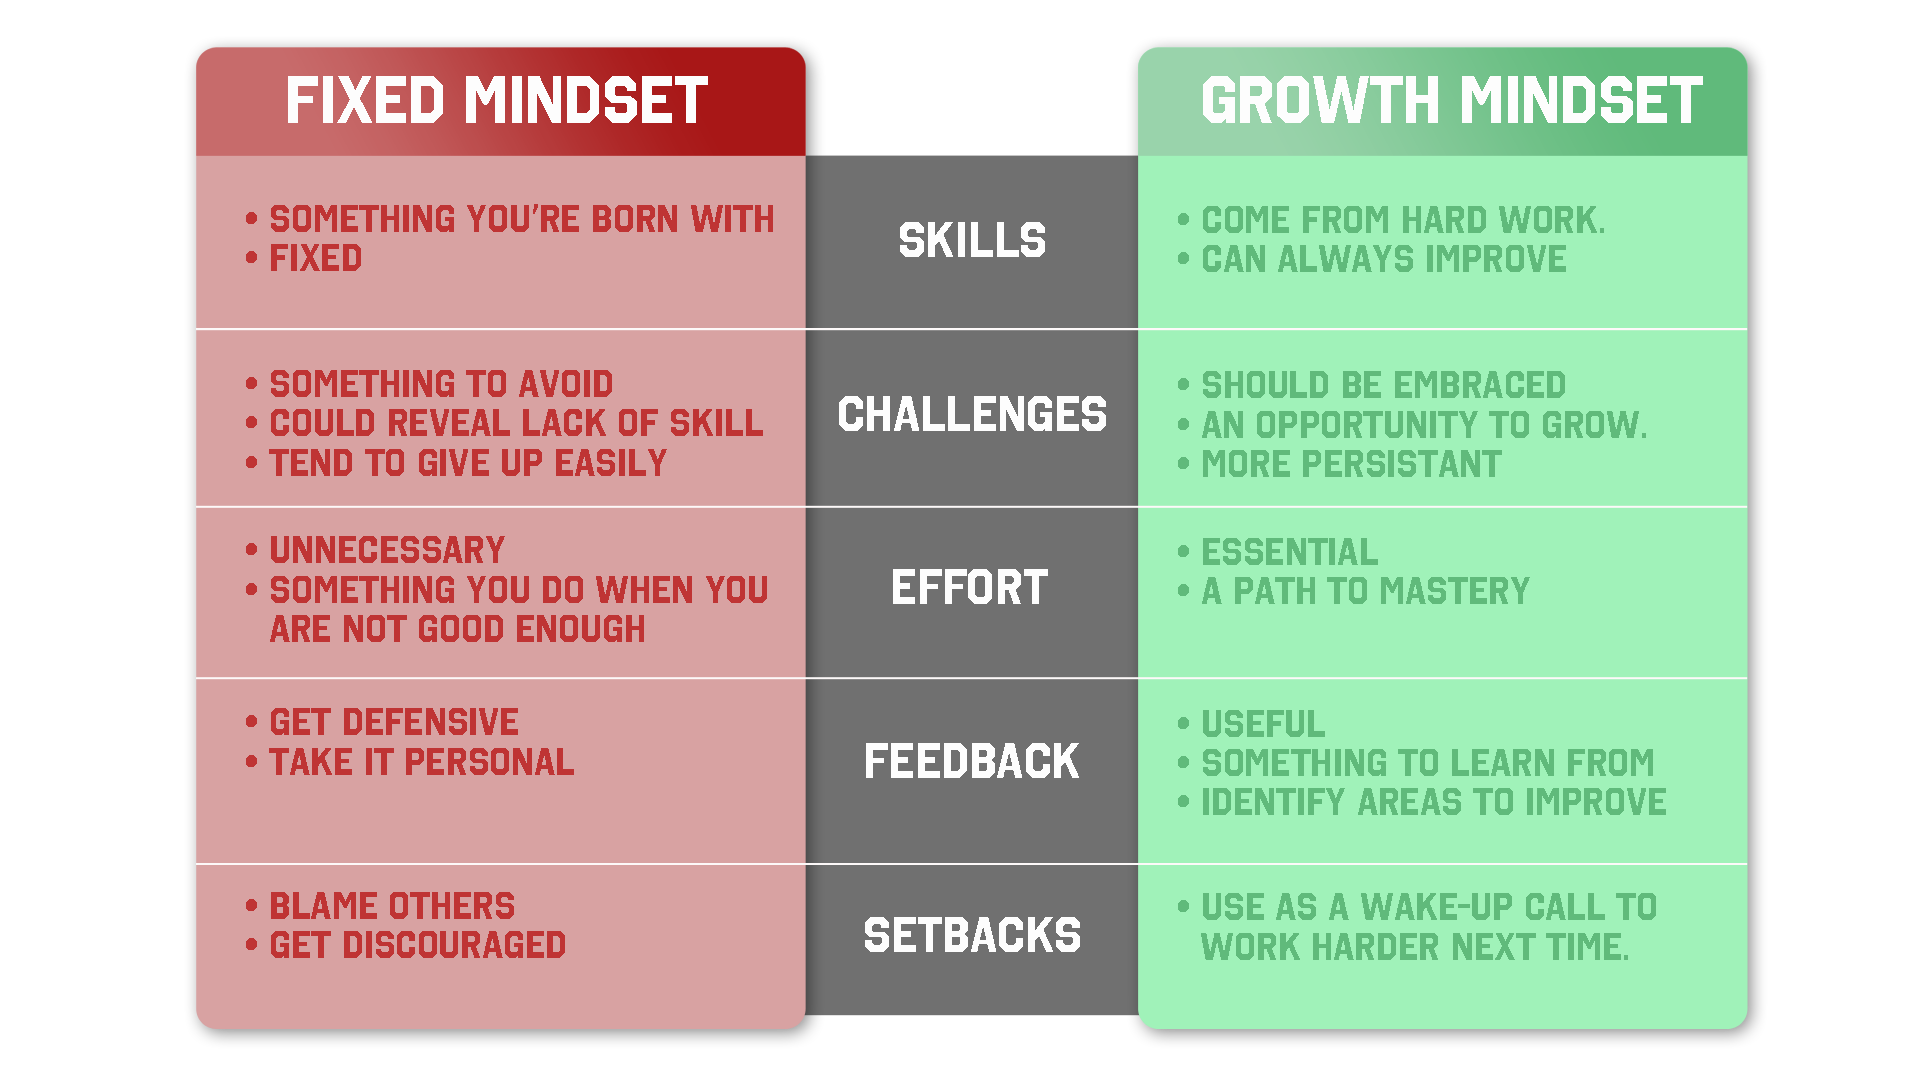 Fixed Mindset vs Growth Mindset Side By Side